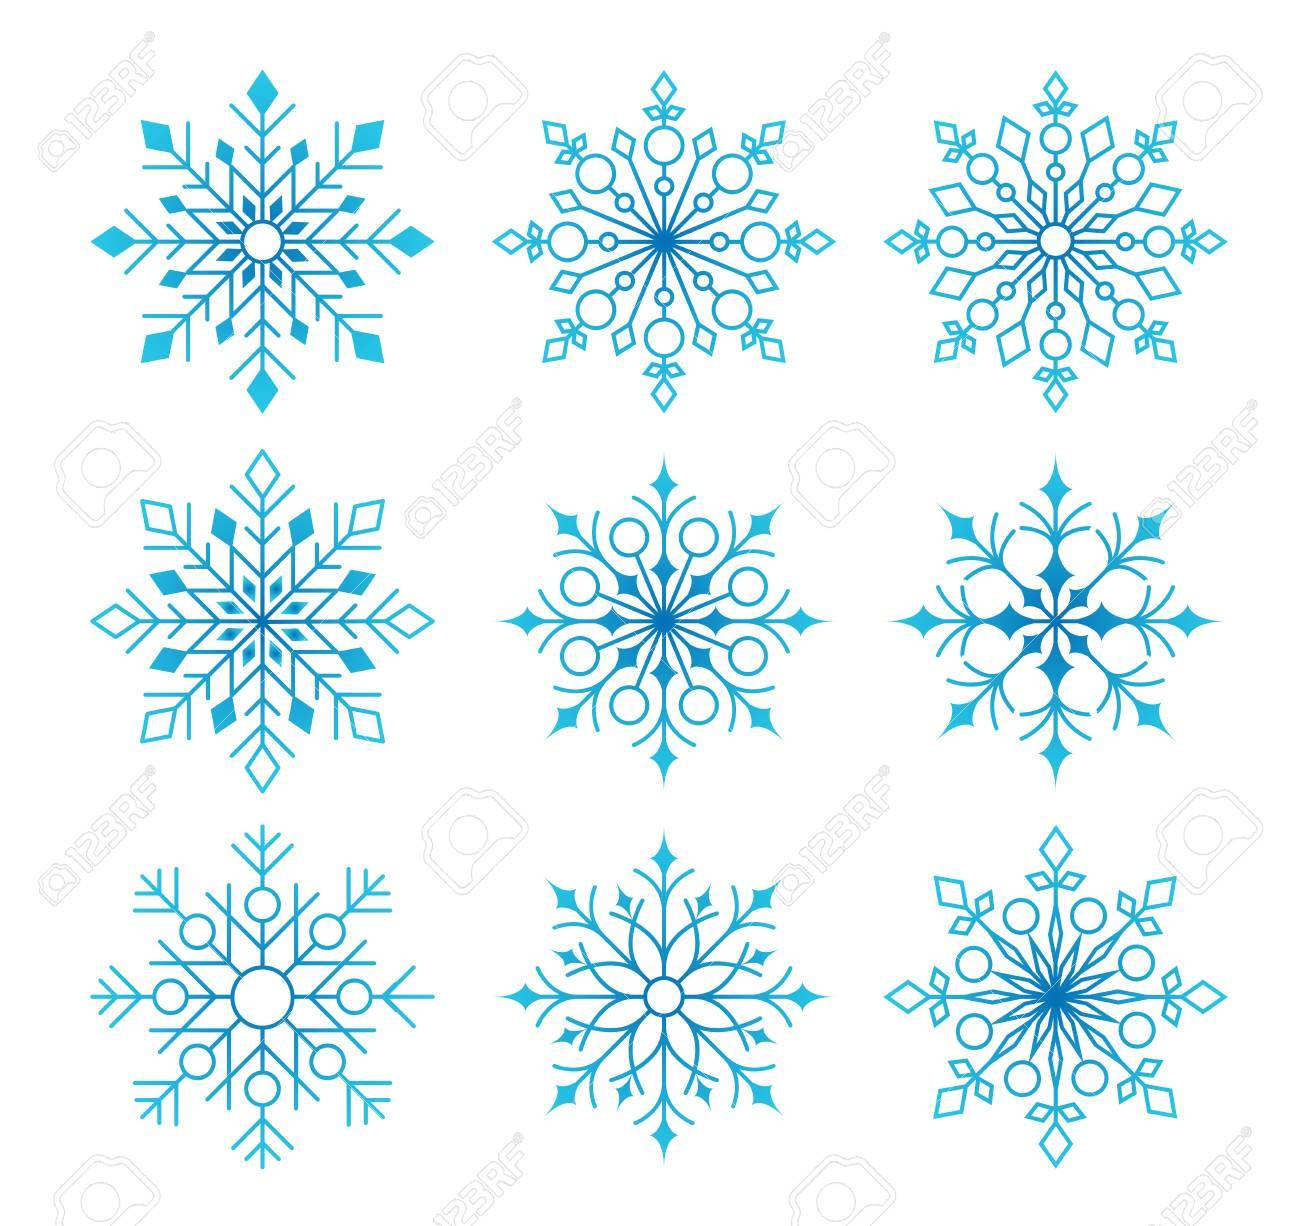 Beautiful Collection of Snow Flakes Isolated in White Background for Winter Season. Vector Illustration - 47108713